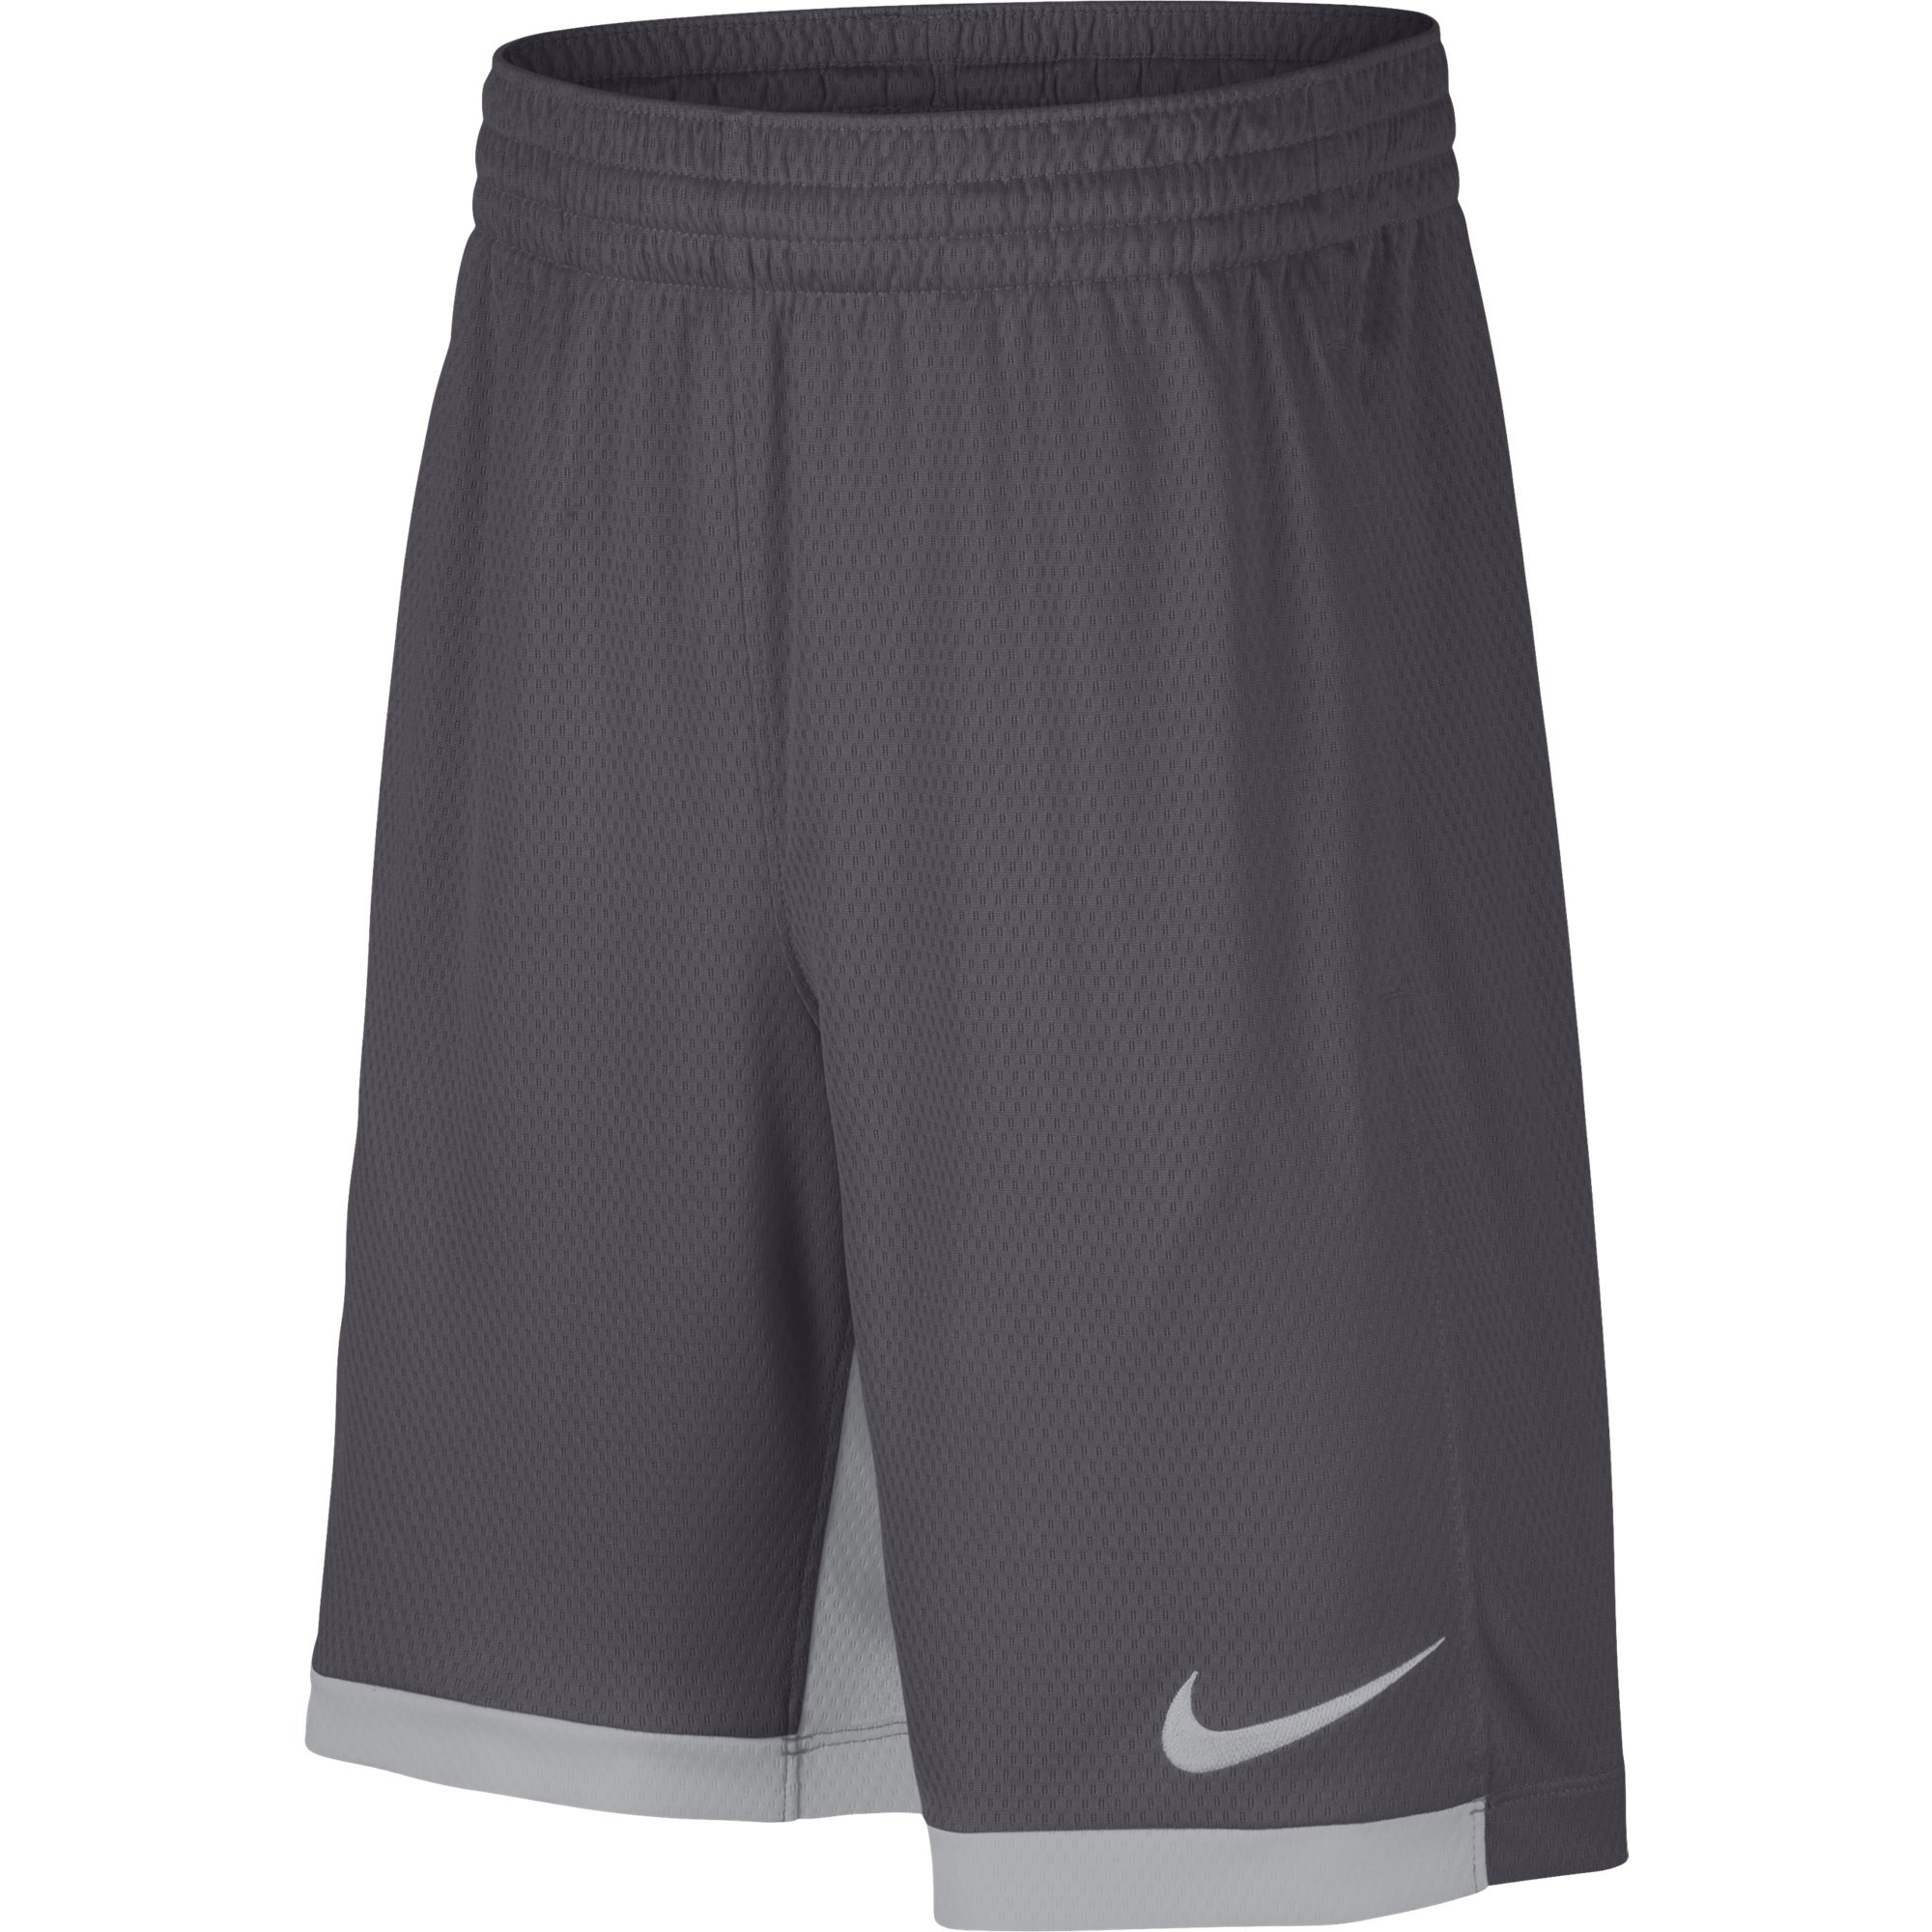 NIKE Boys' Dry Trophy Athletic Shorts, Dark Grey/Wolf Grey/Wolf Grey, X-Small